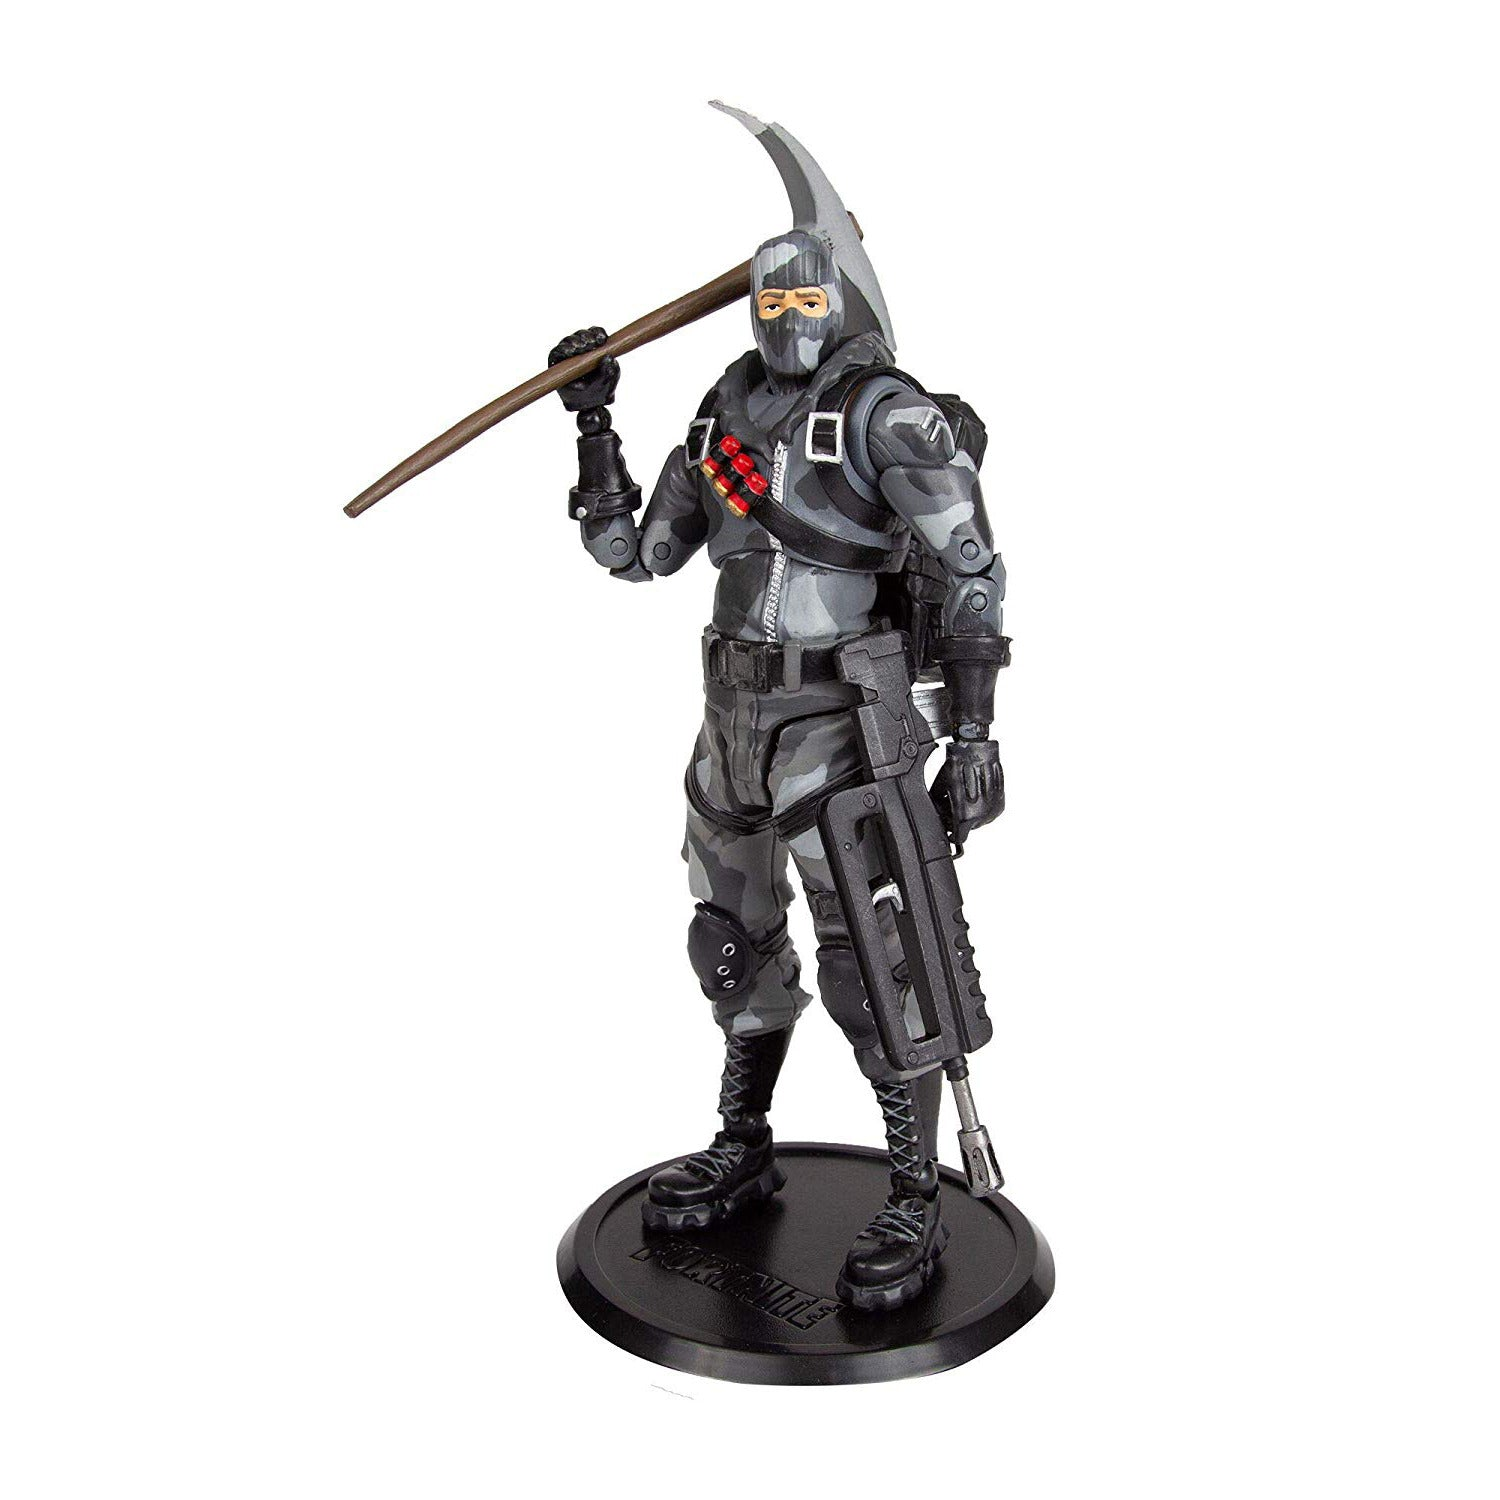 Fortnite Havoc 7 inch Premium Action Figure